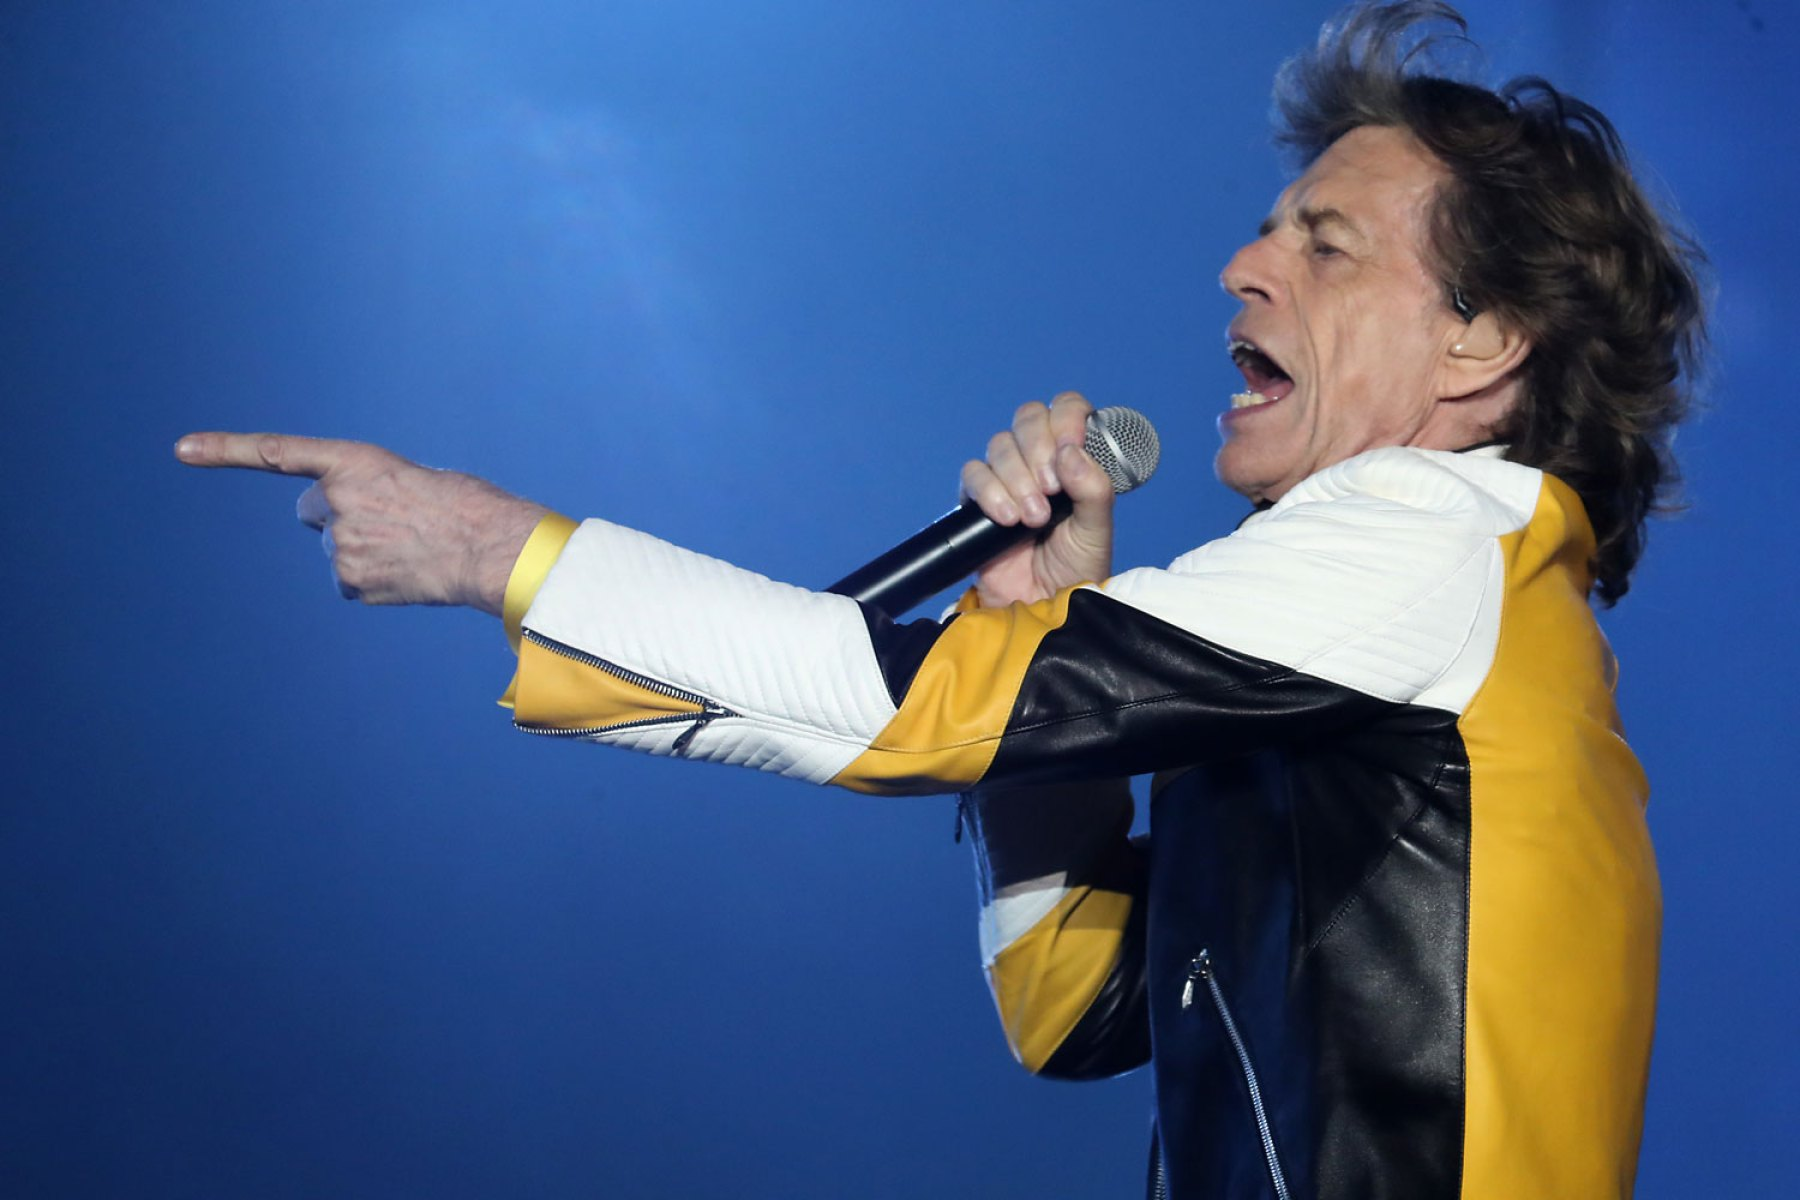 FOXBOROUGH, MA - JULY 7: Lead singer Mick Jagger performs in concert with the Rolling Stones at Gillette Stadium in Foxborough, MA on July 7, 2019. (Photo by Matthew J. Lee/The Boston Globe via Getty Images)